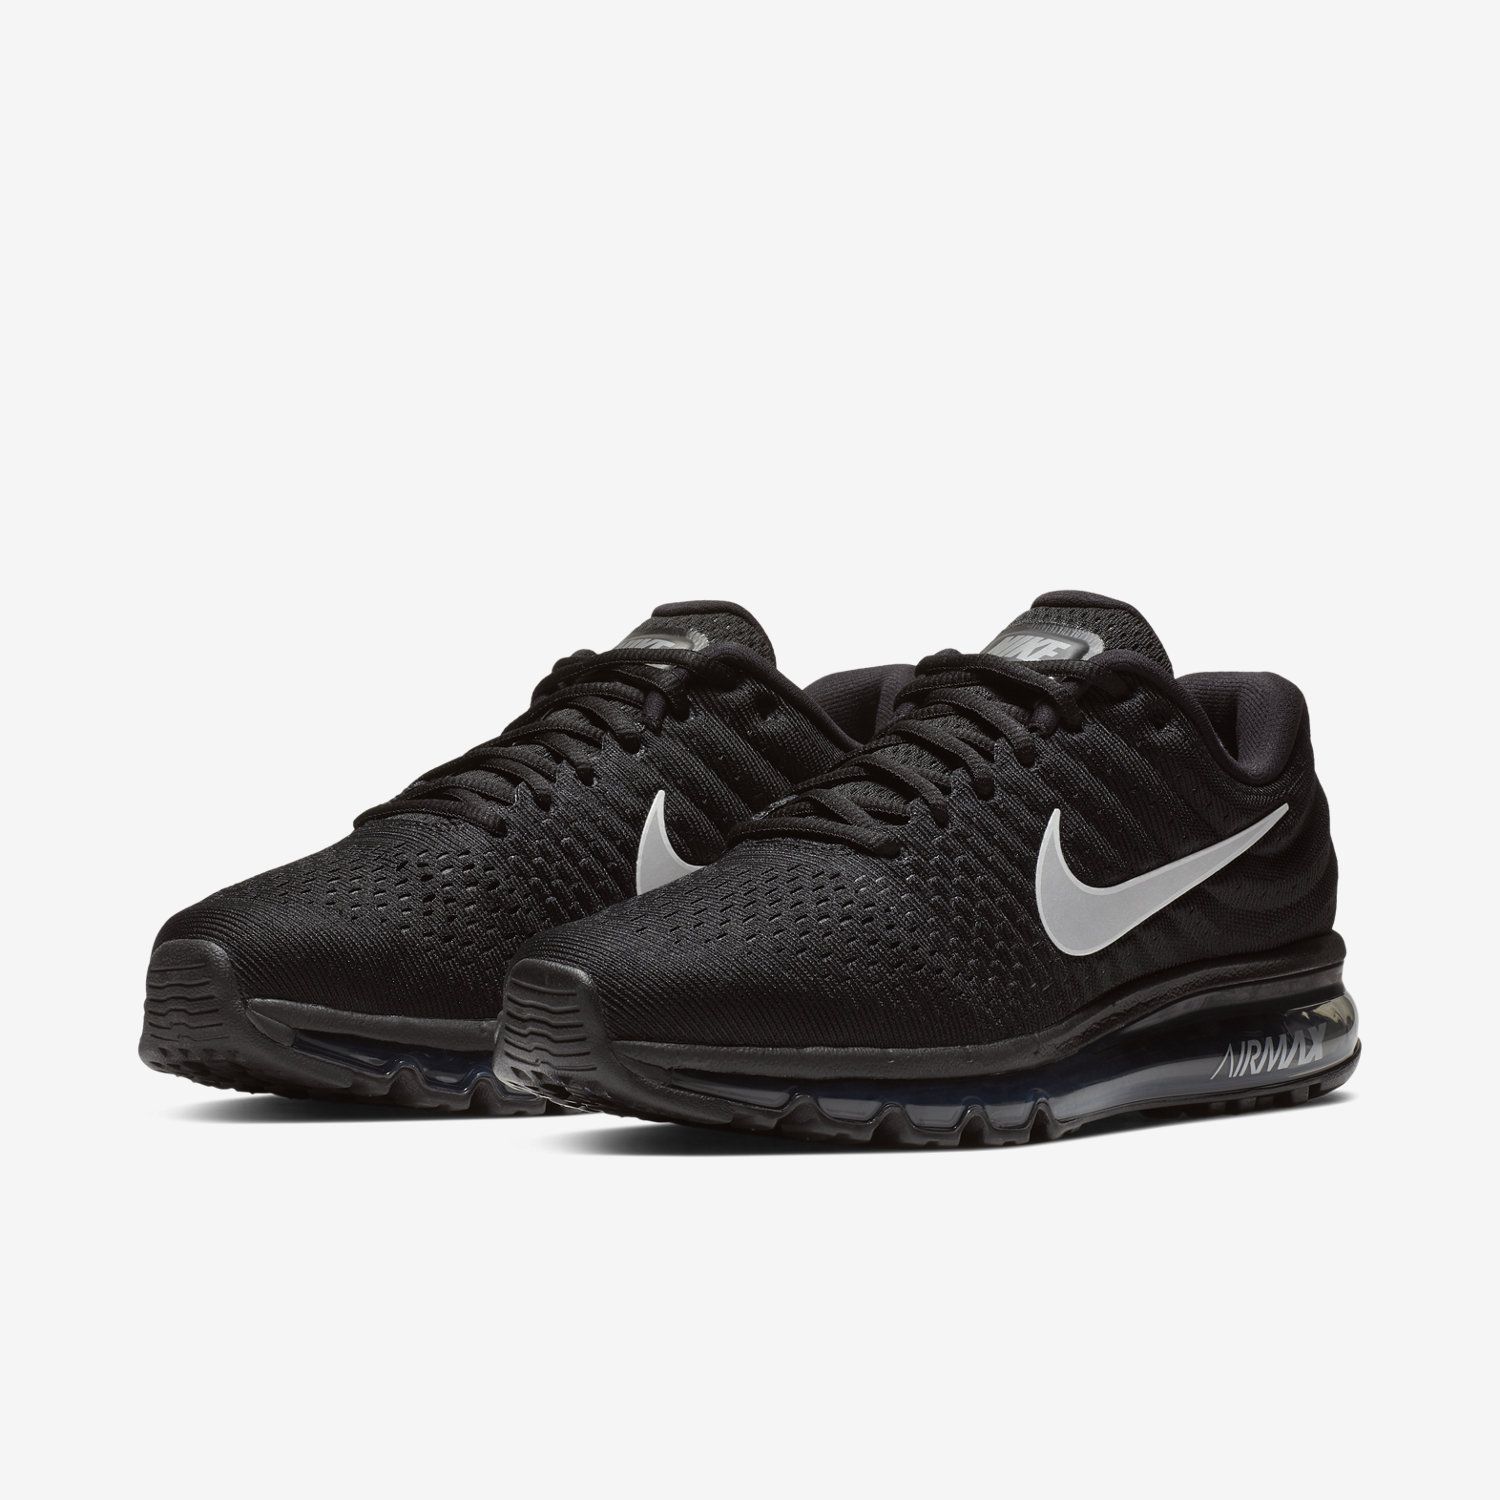 Nike air max 2018 black and white dresses